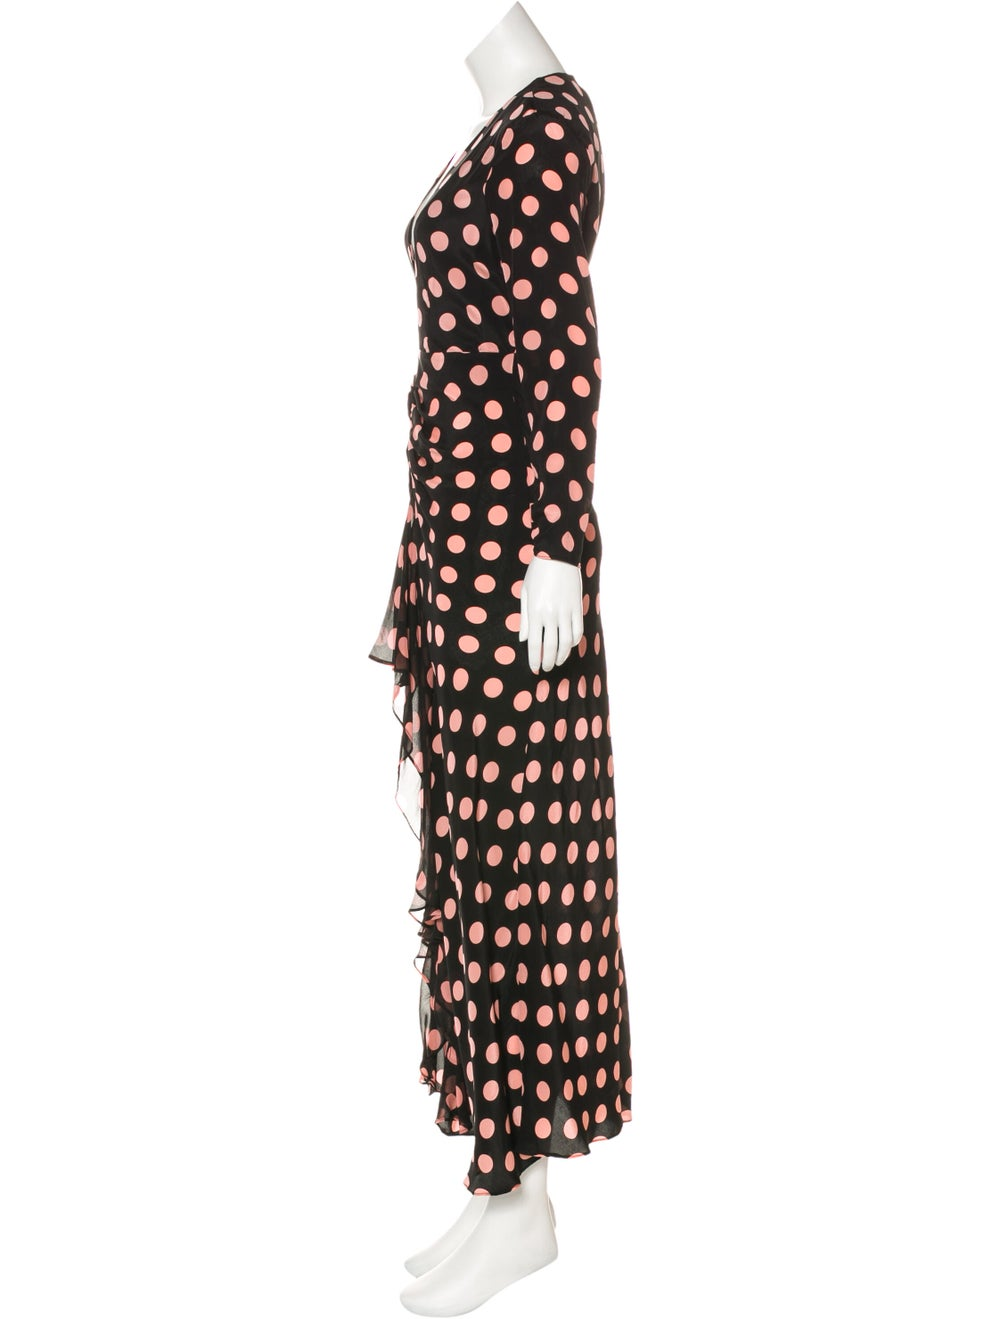 Rixo Silk Polka Dot Dress Black - image 2